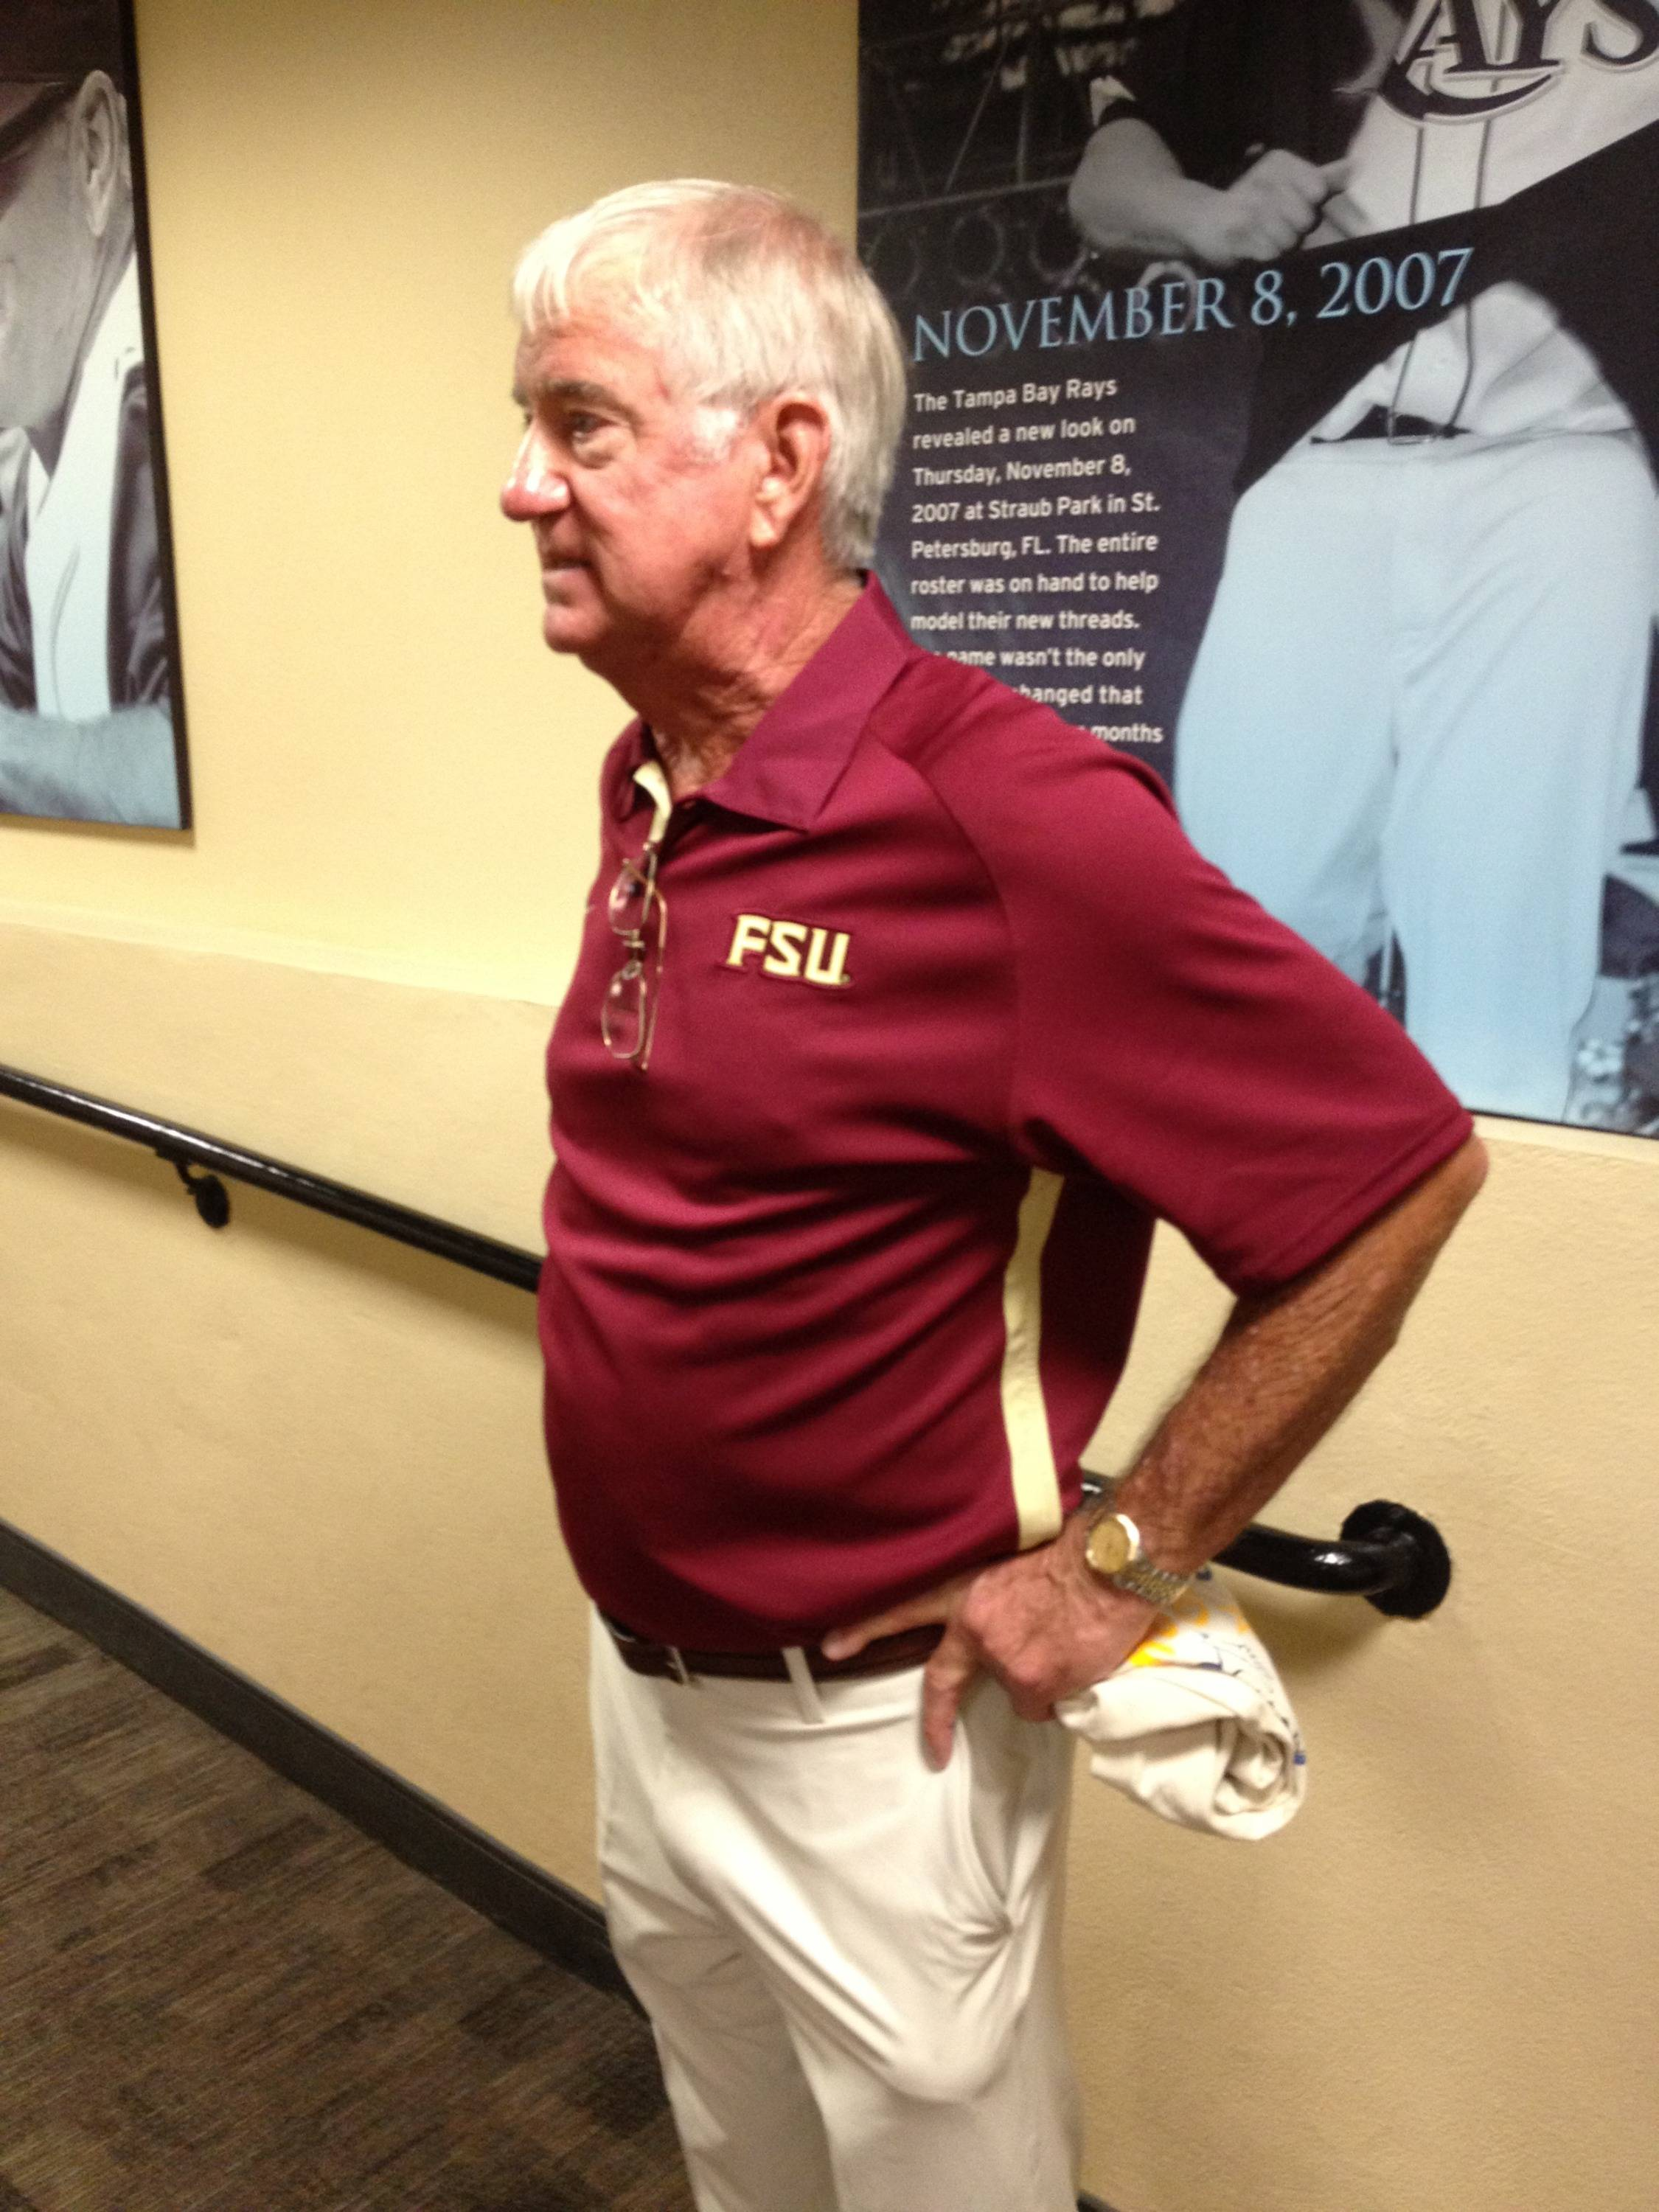 Mike Martin speaks with Seminoles.com after the first pitch.